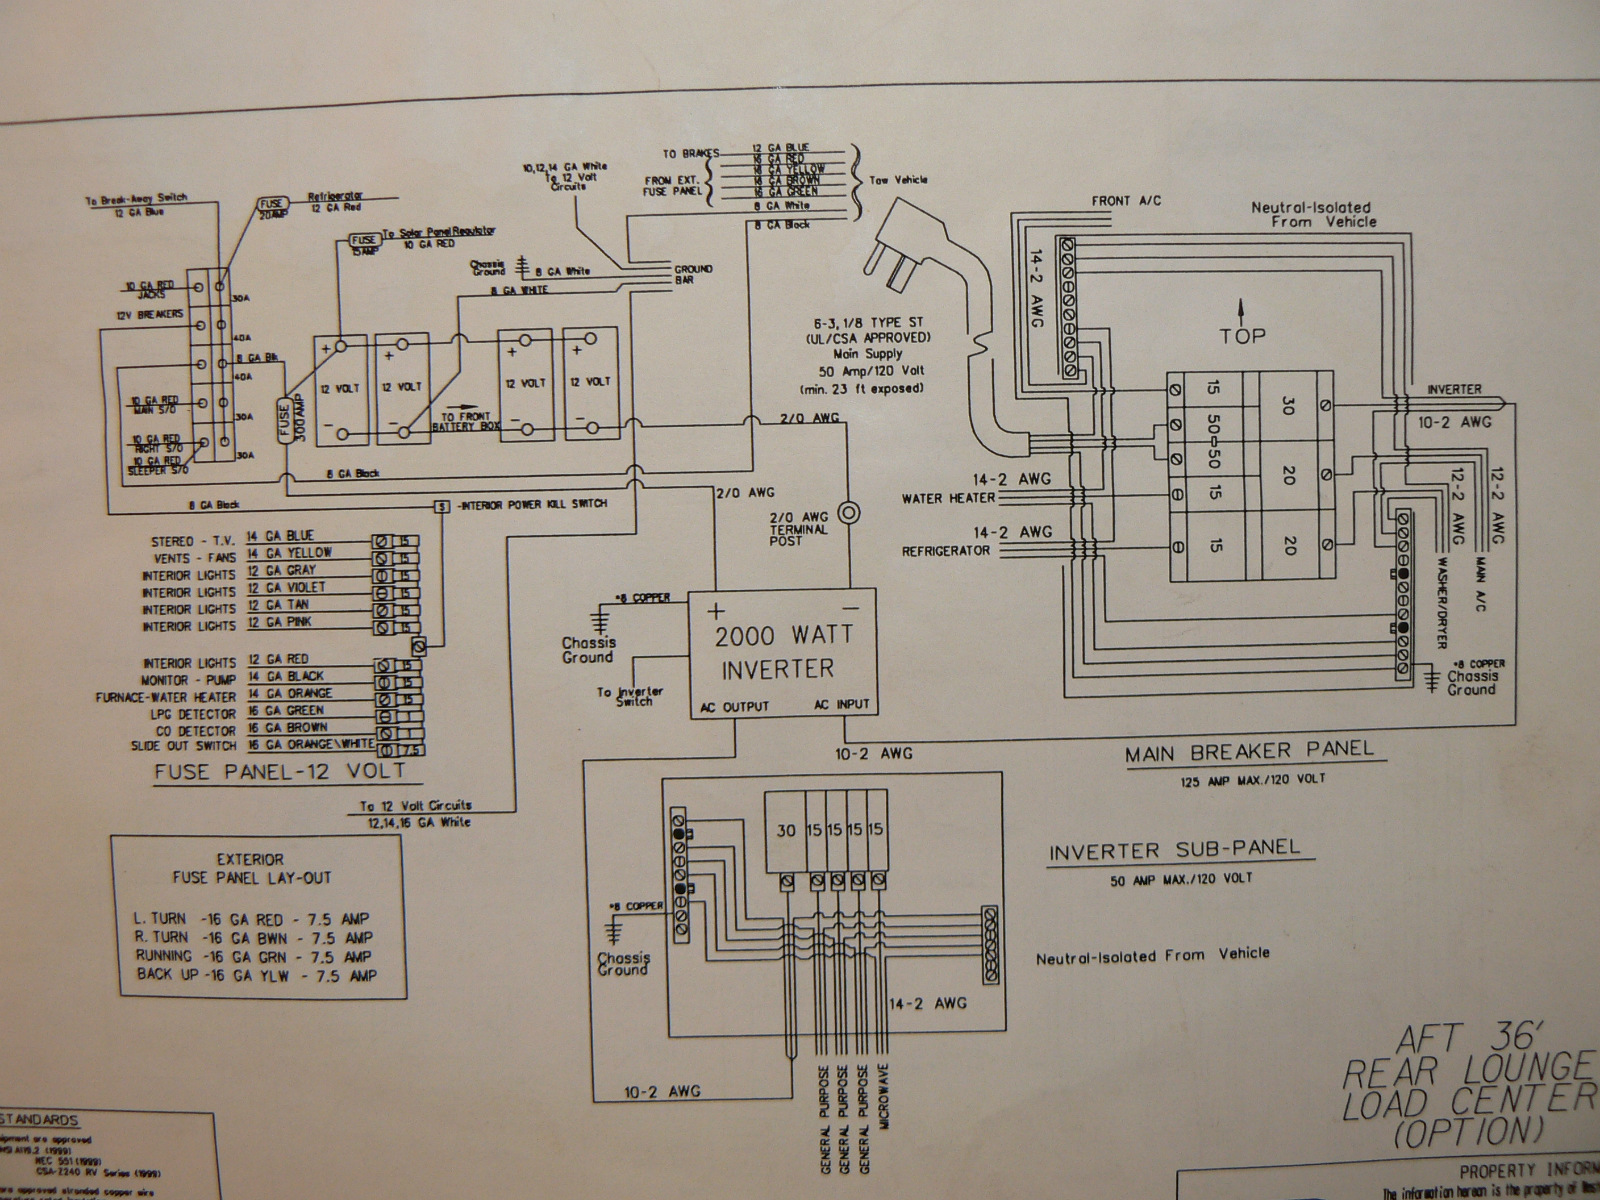 Micro Monitor Wiring Diagram Library Wig Wag Wire Harness Amazing Kib Panel Ideas Electrical And Schematic